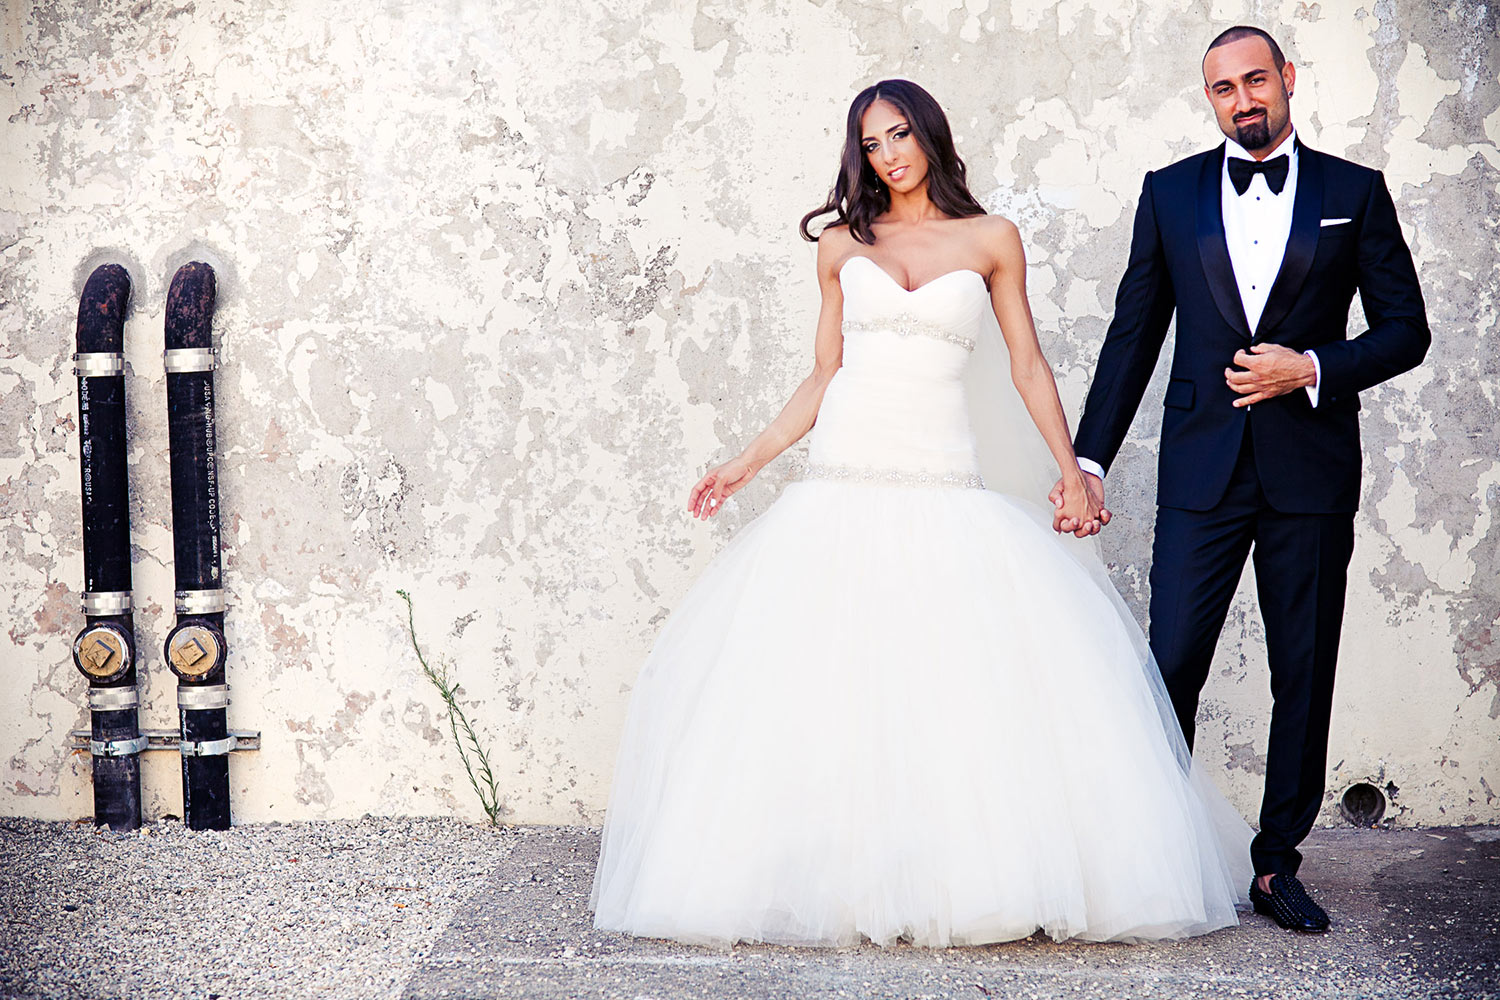 Fashion wedding at Vibiana in downtown Los Angeles - Persian Groom and Bride wearing couture gown and tuxedo